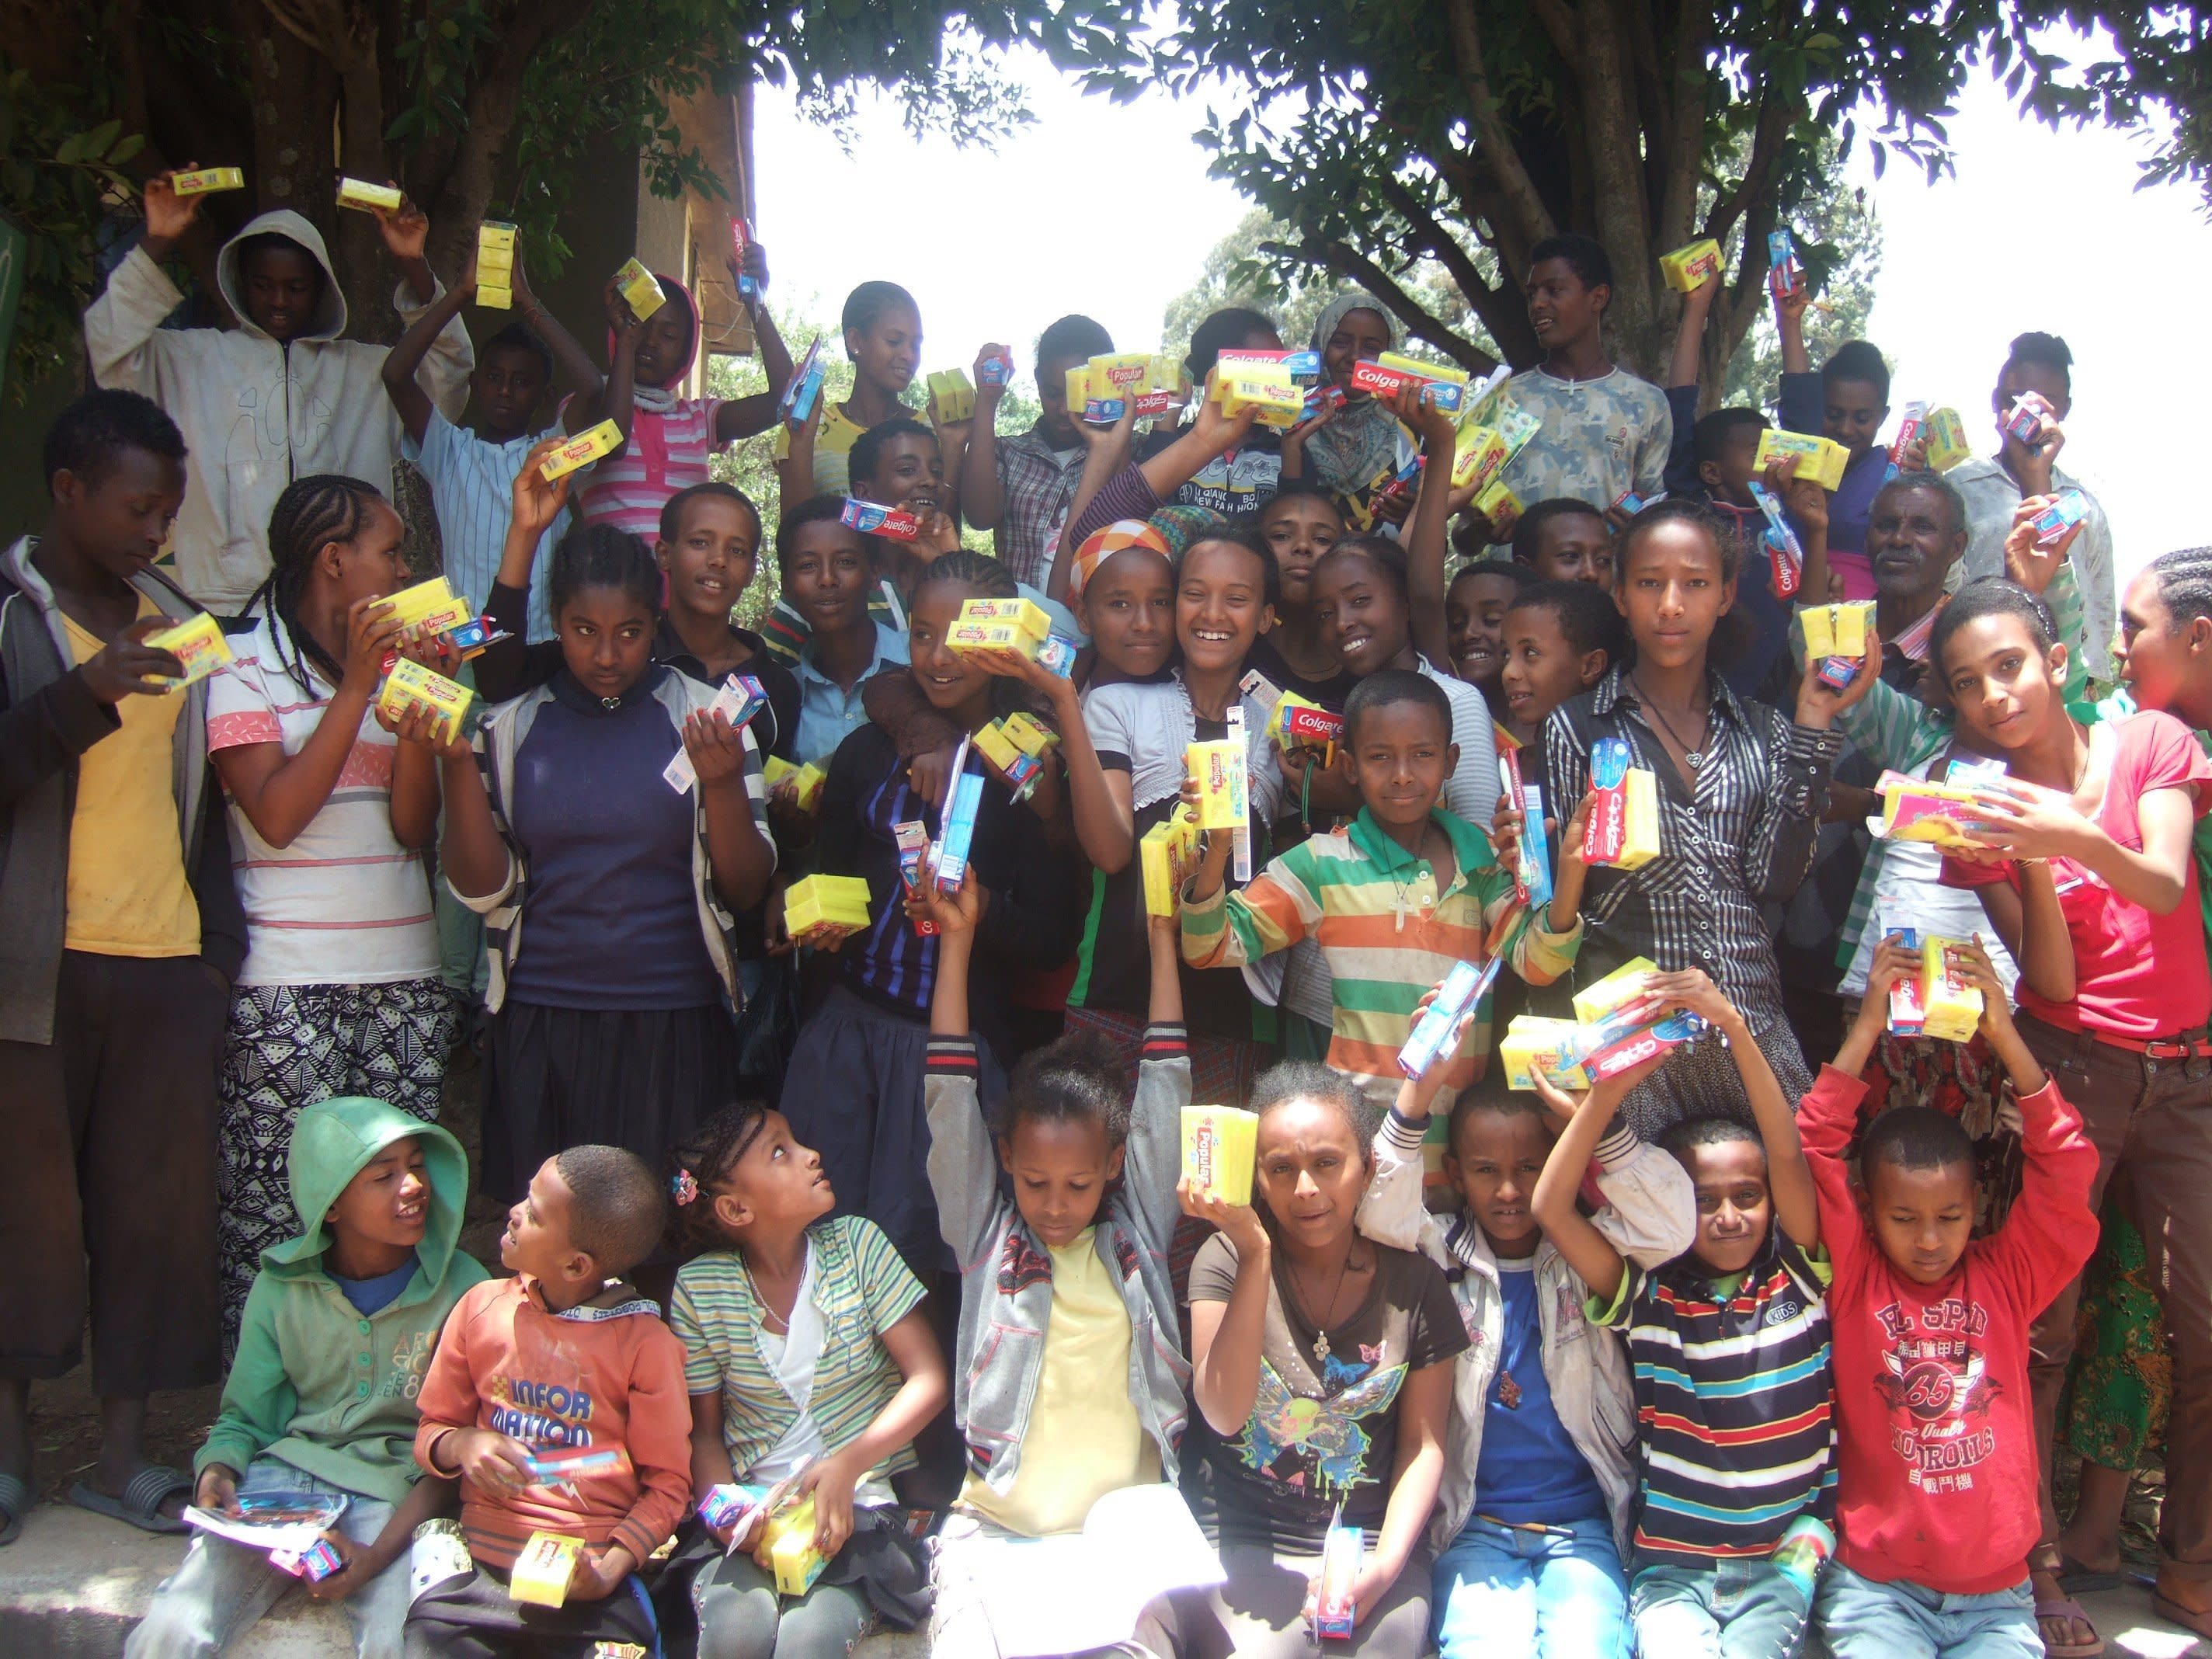 Sponsorship-hygine-materials-June-14-152014-5_njuosy.jpg